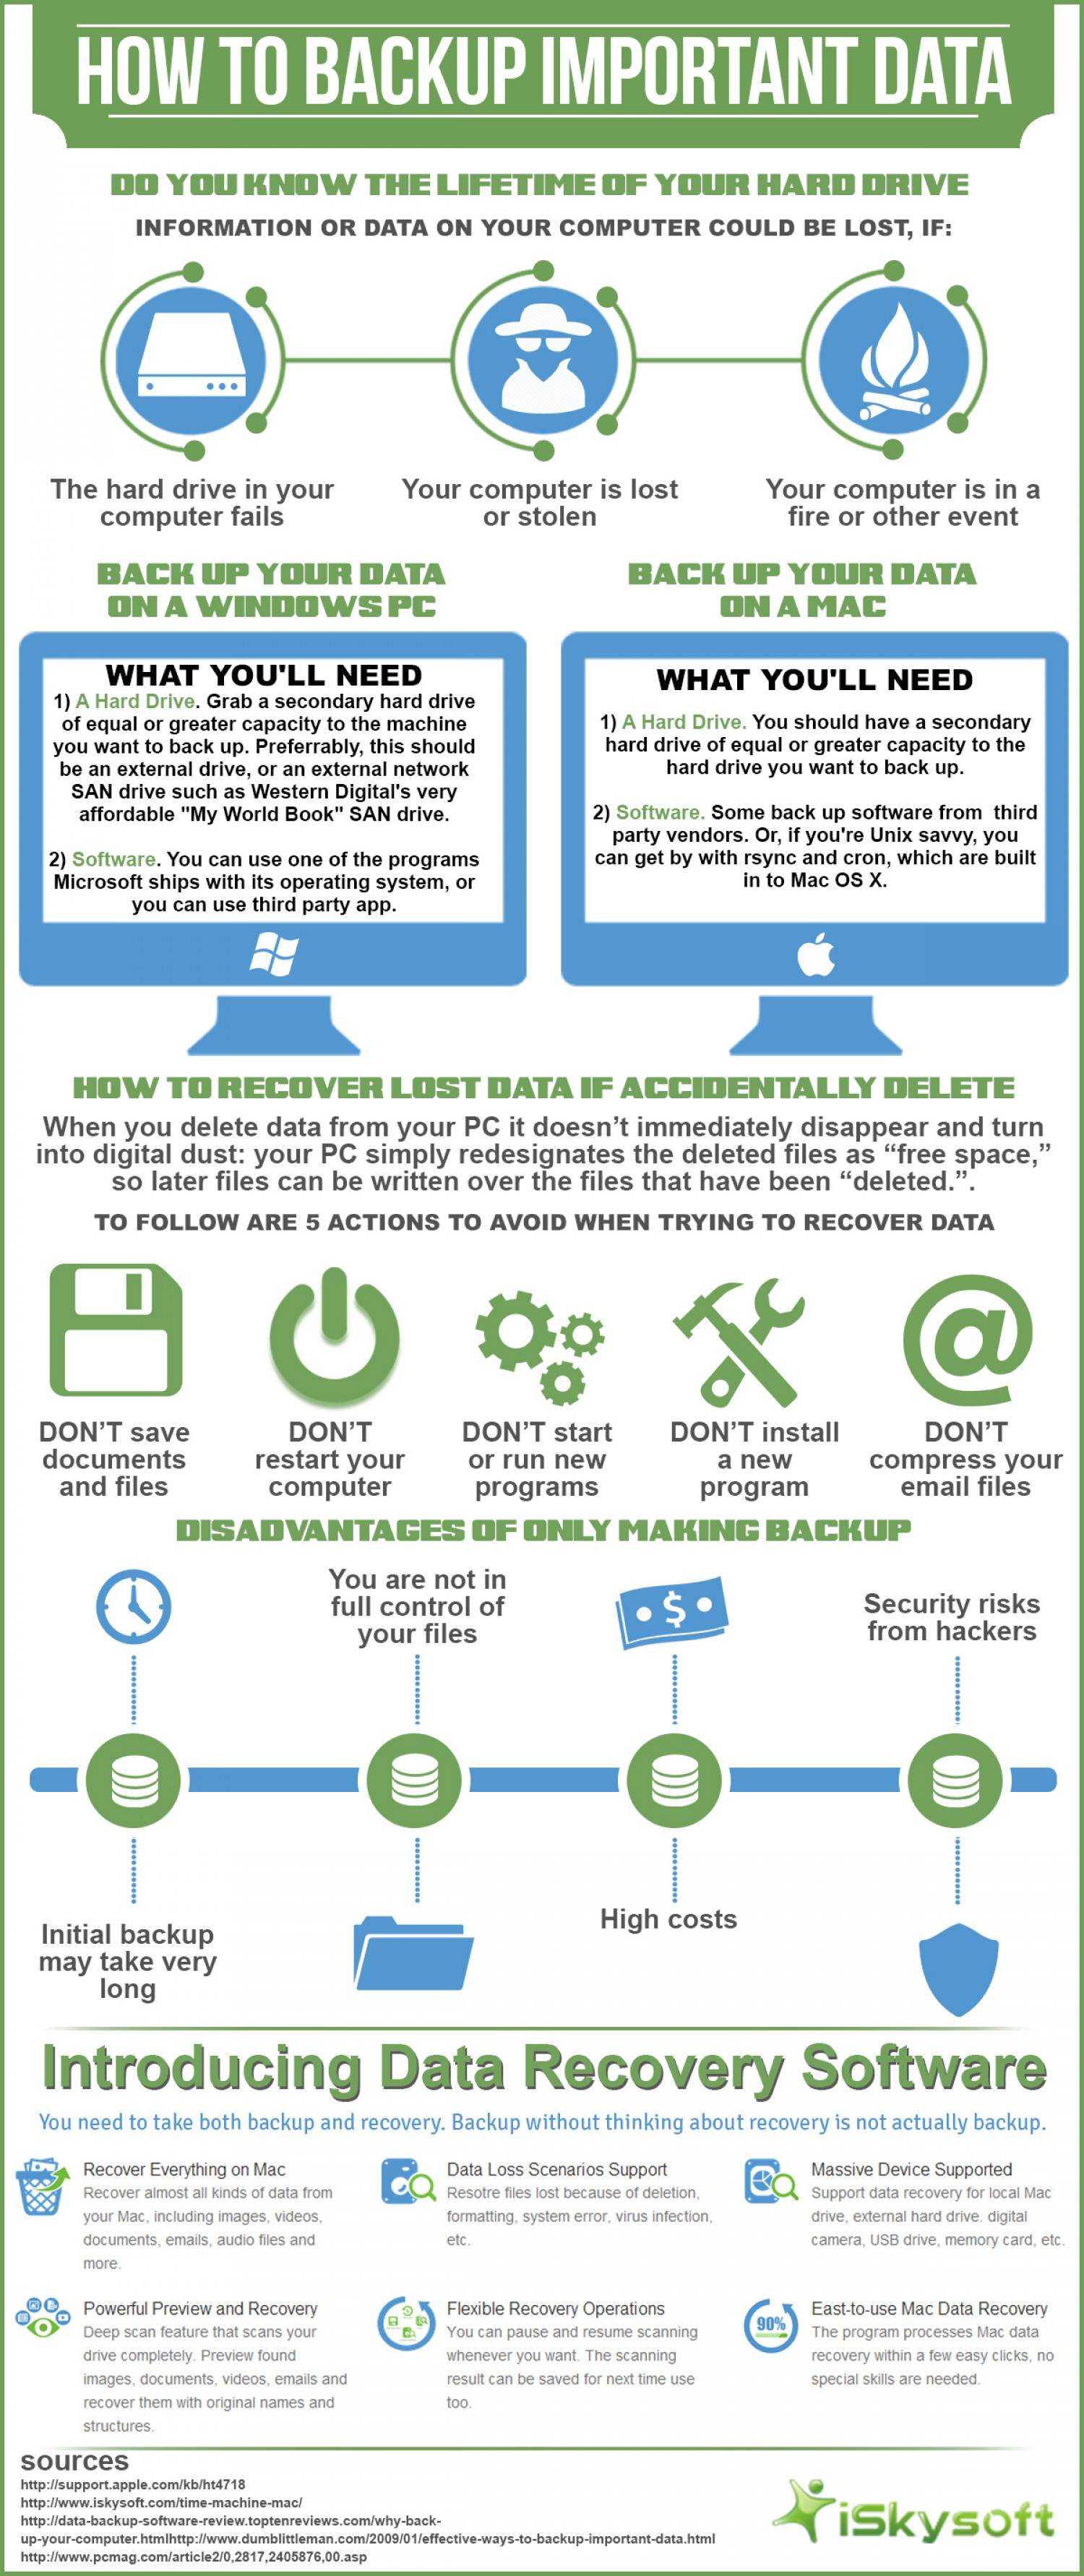 How to Backup Important Data Infographic